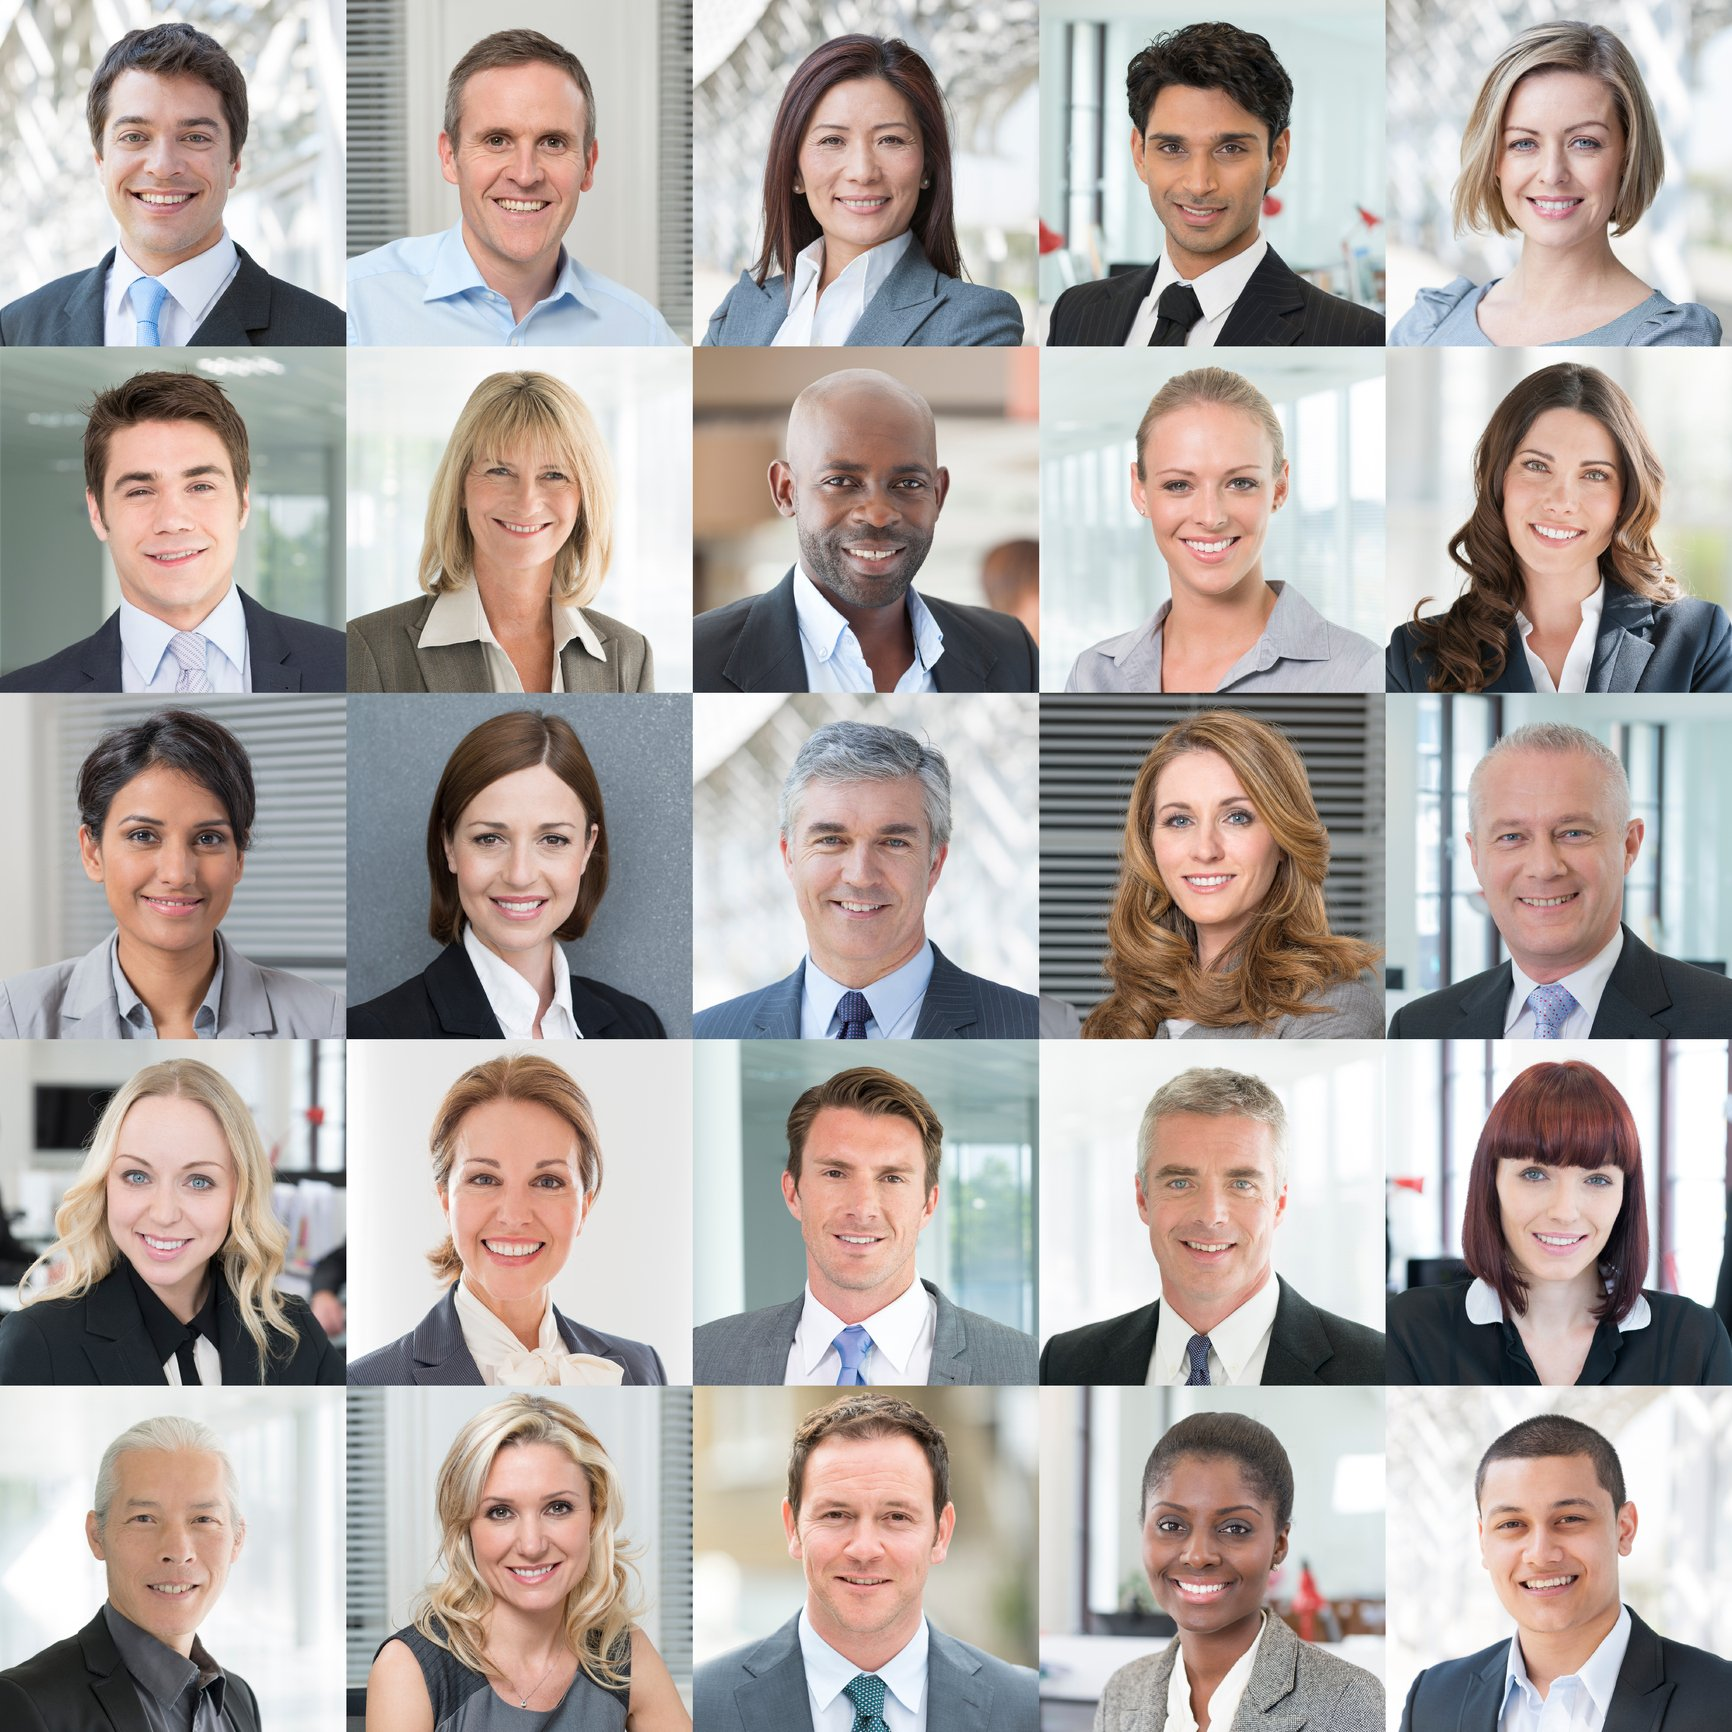 Management – The 5 Important Skills